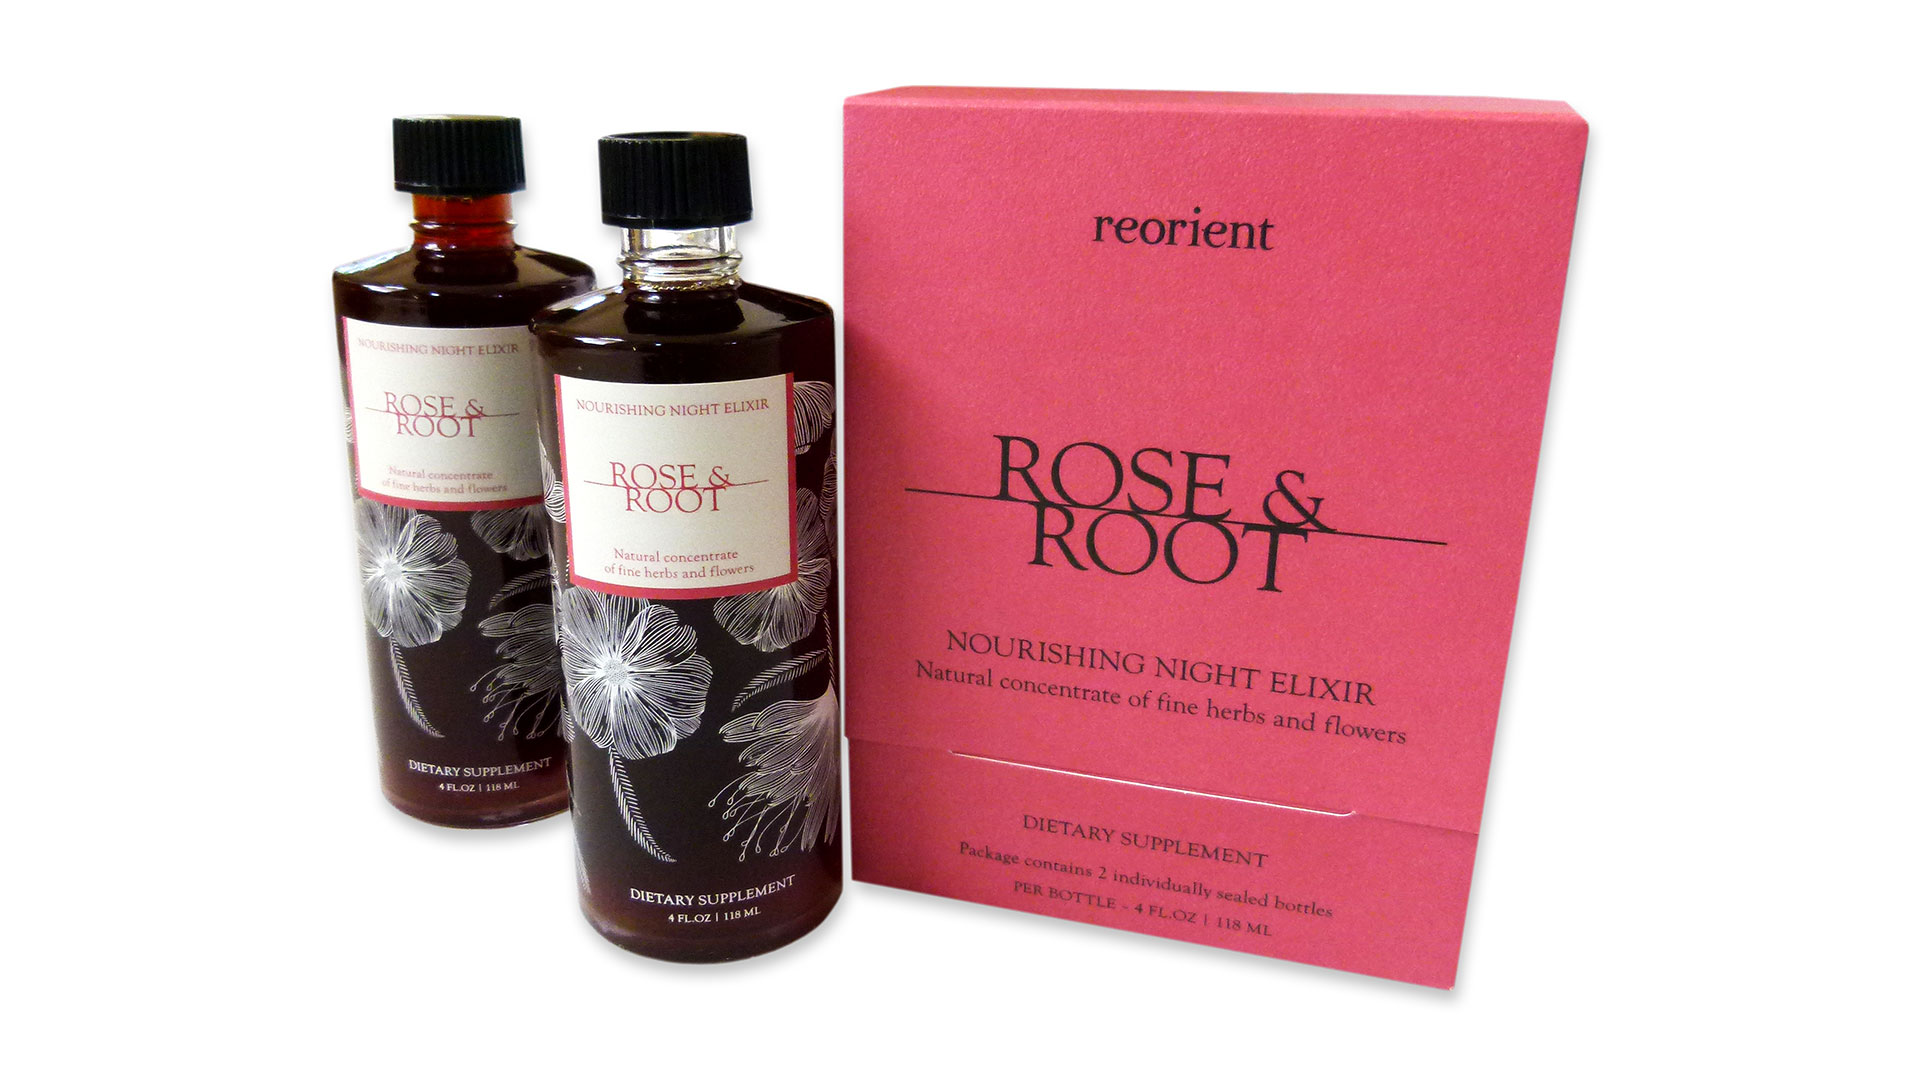 Rose & Root Packaging - PaperSpecs